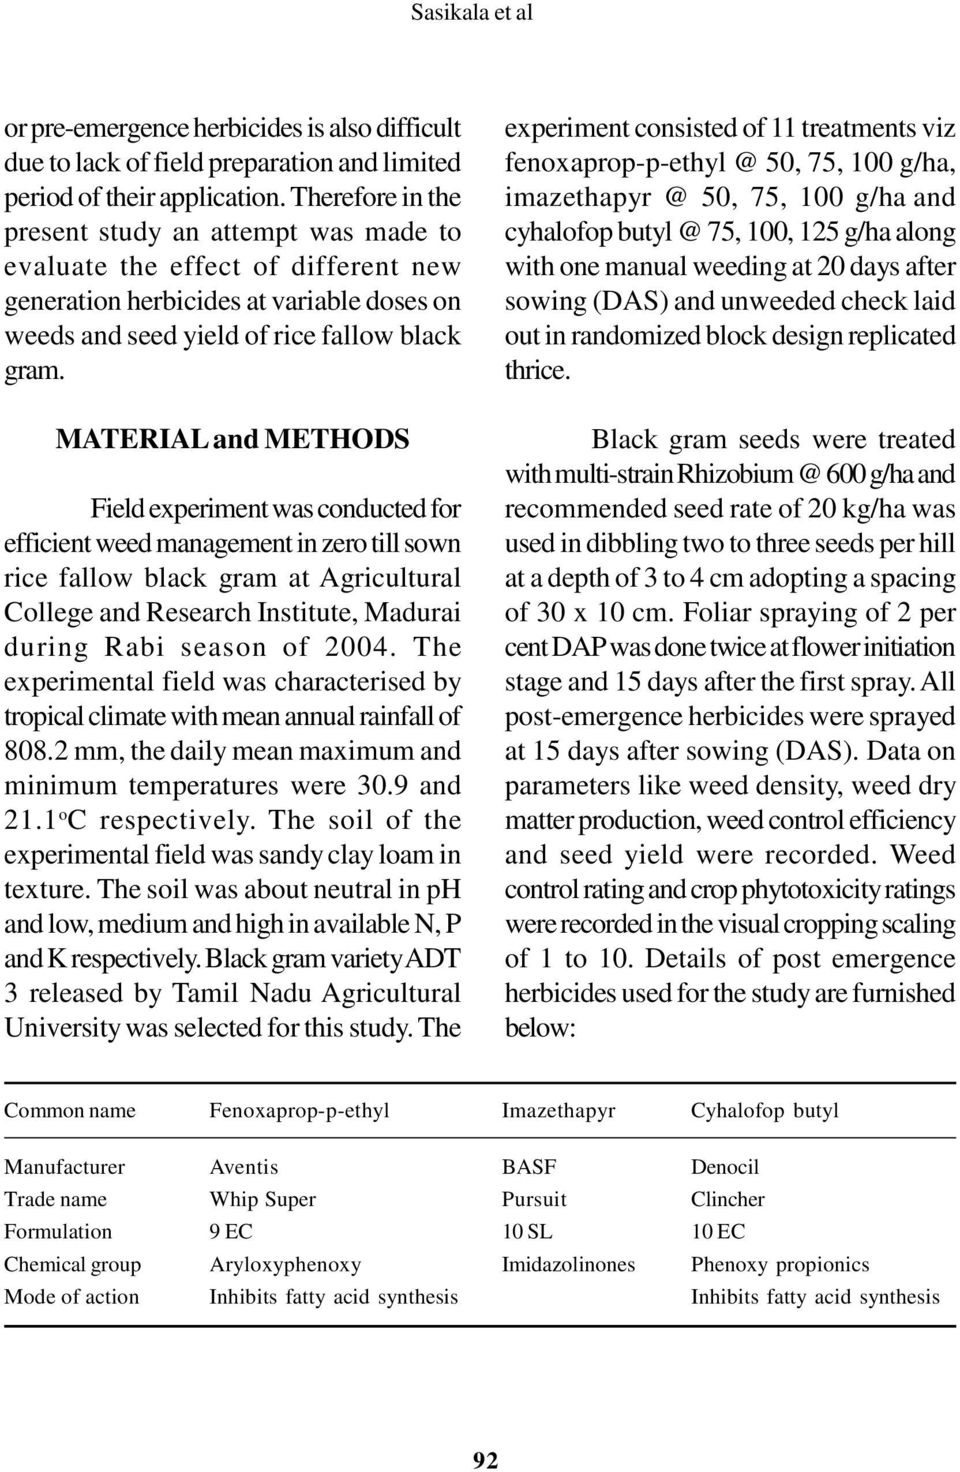 MATERIAL and METHODS Field experiment was conducted for efficient weed management in zero till sown rice fallow black gram at Agricultural College and Research Institute, Madurai during Rabi season